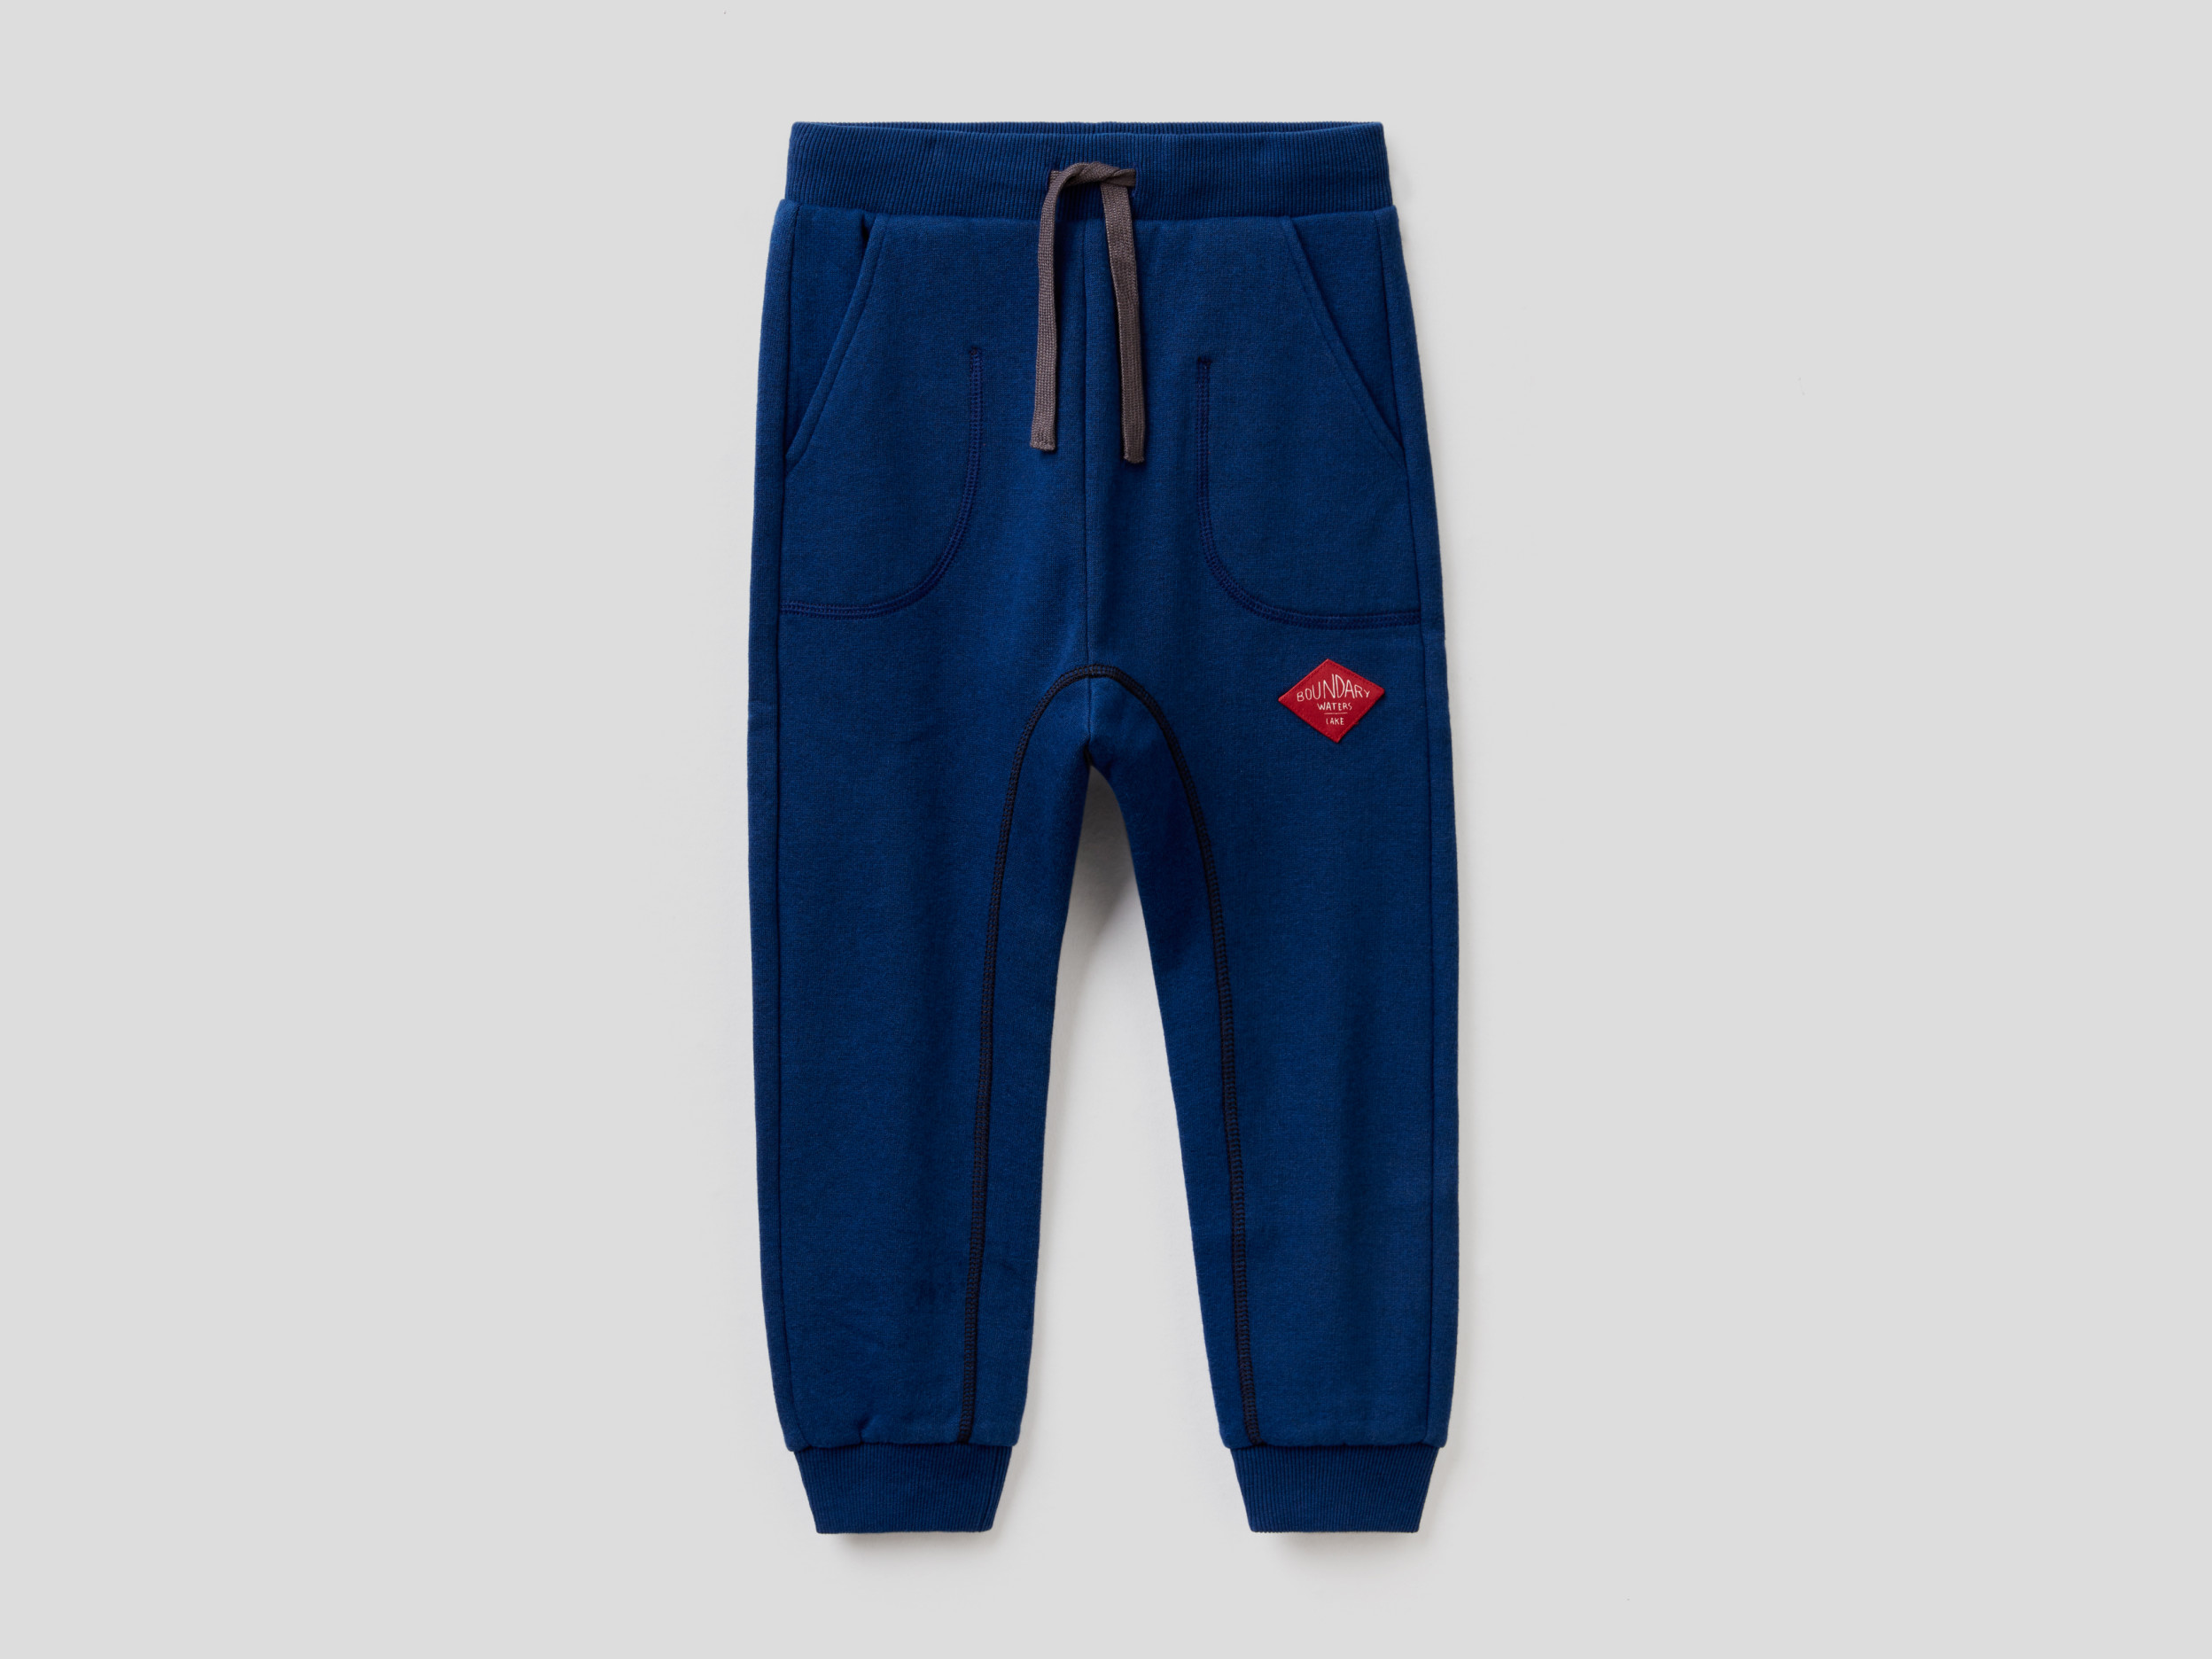 Benetton, Sweatpants With Visible Seam, size , Bright Blue, Kids